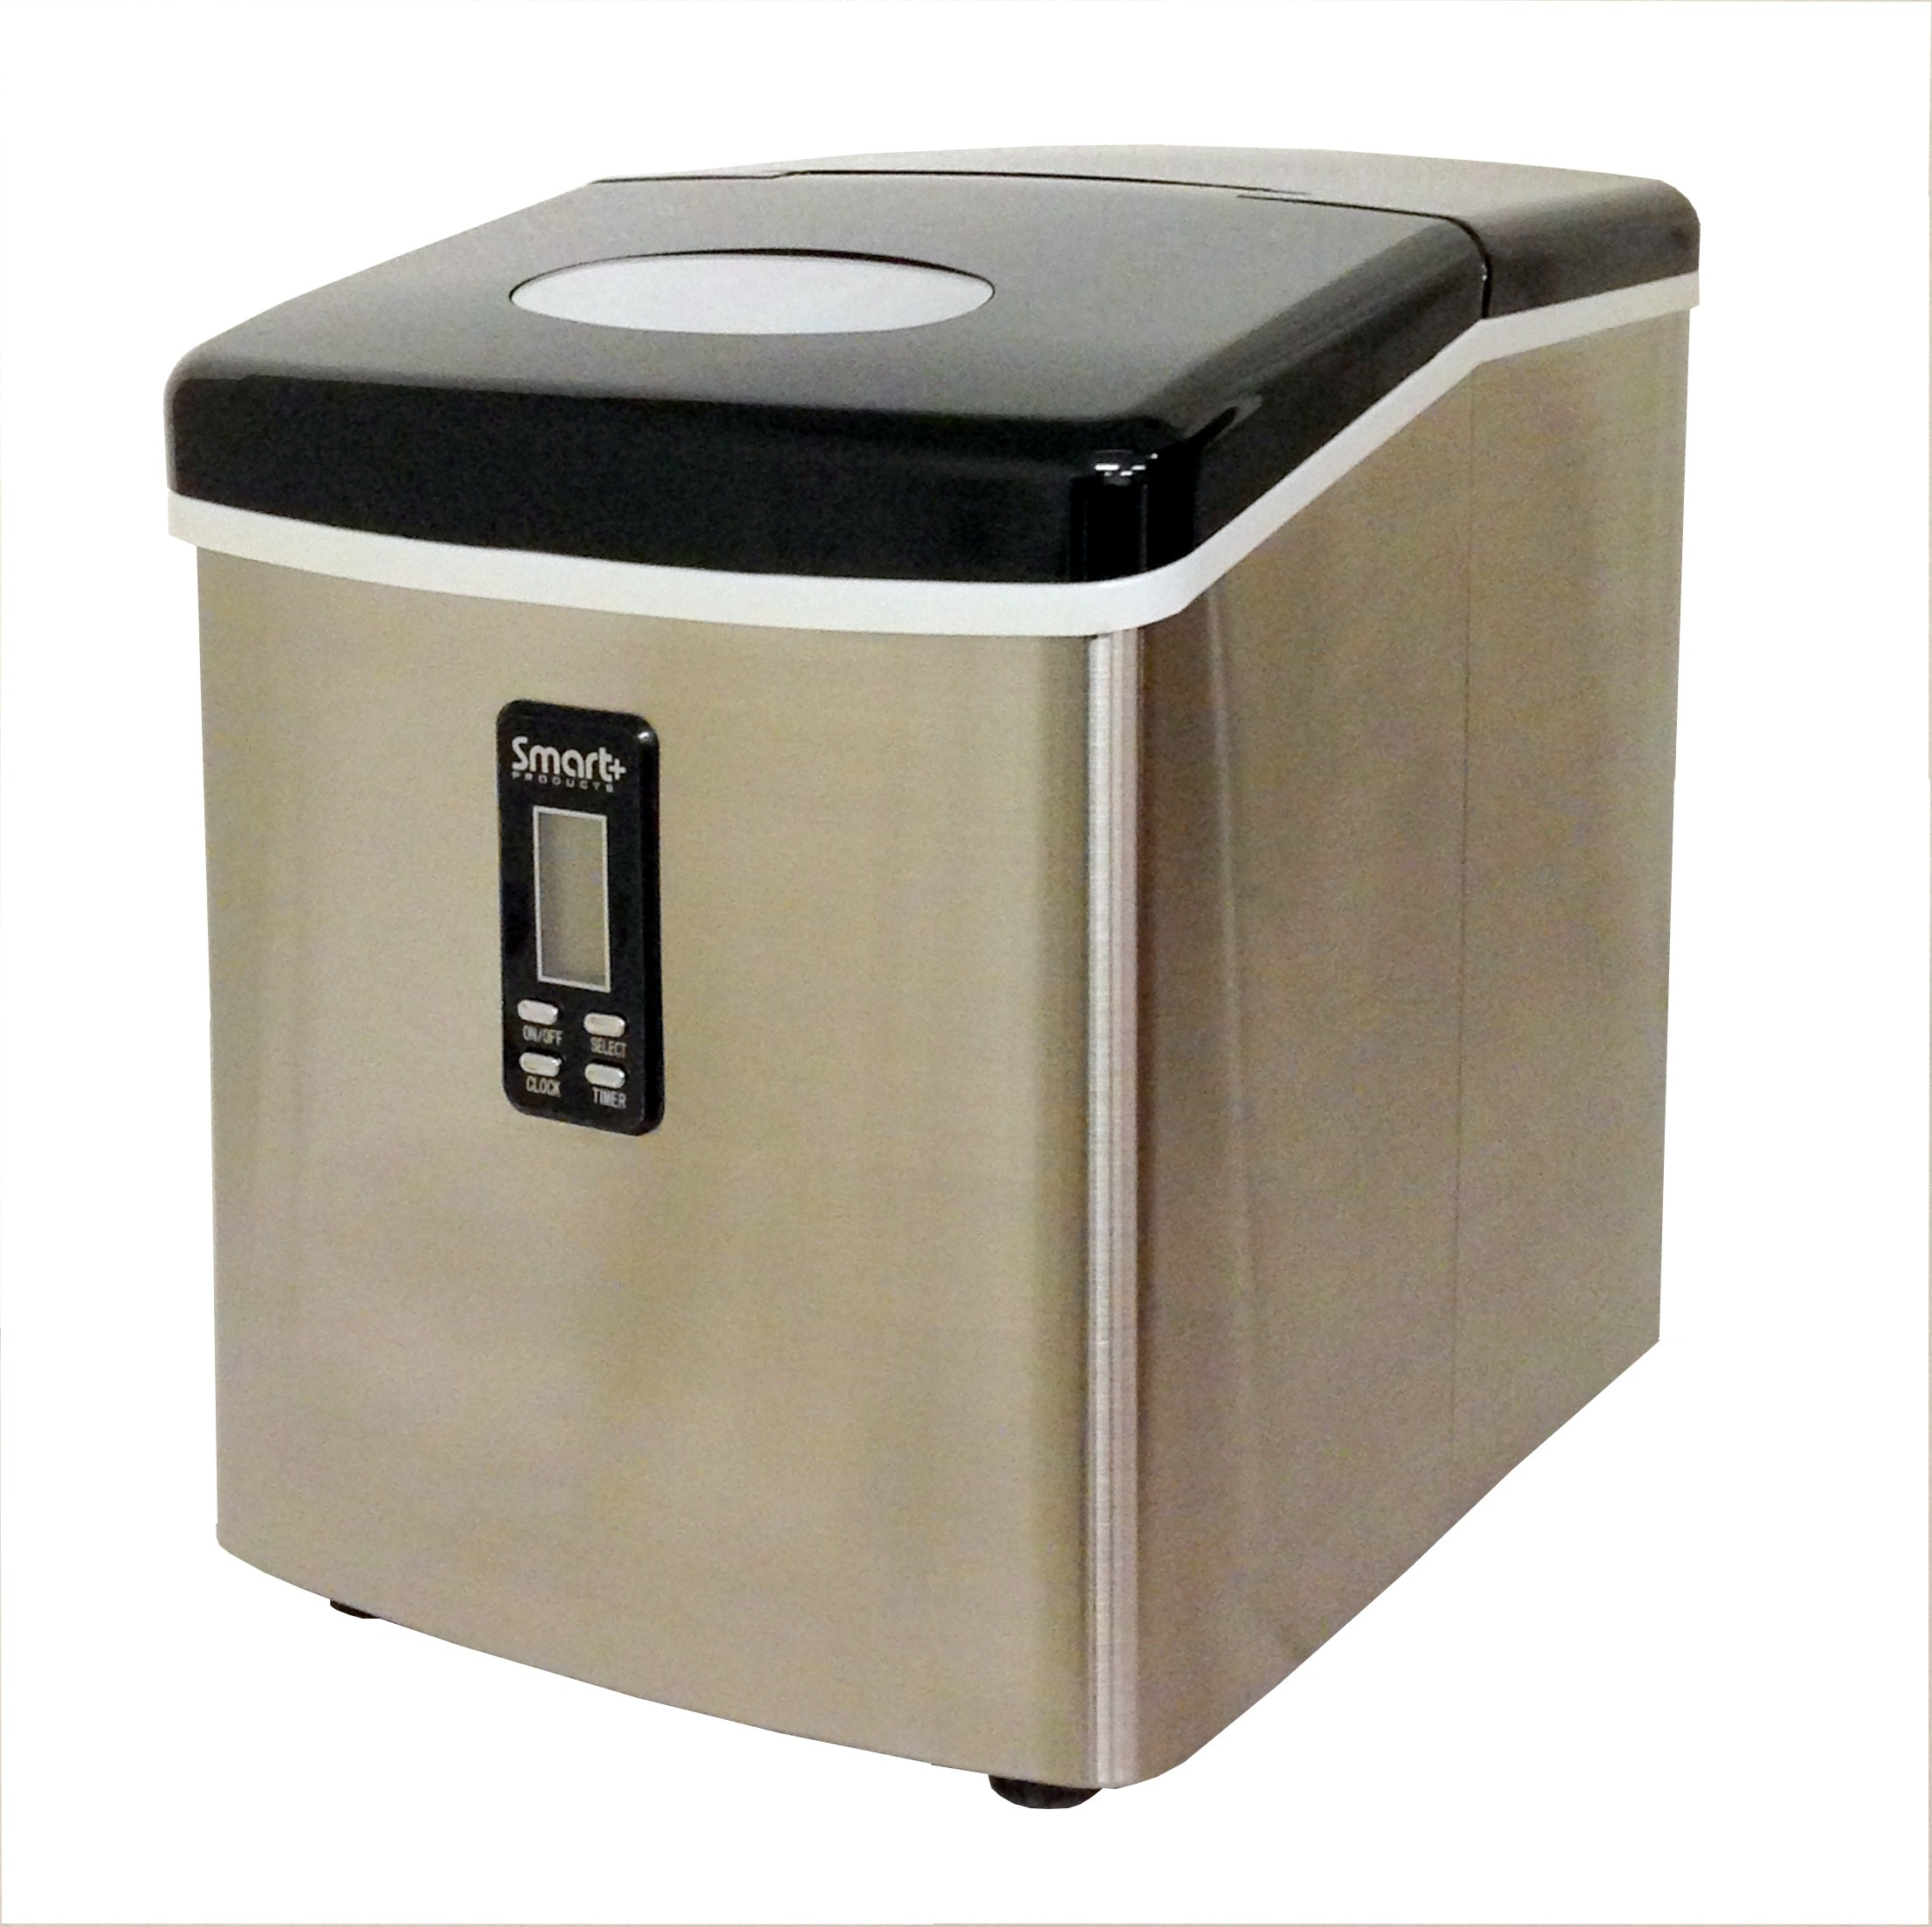 How Does Countertop Ice Maker Work : ... Smart+ Portable Countertop Ice Maker Machine Stainless SPP15AIM Refurb